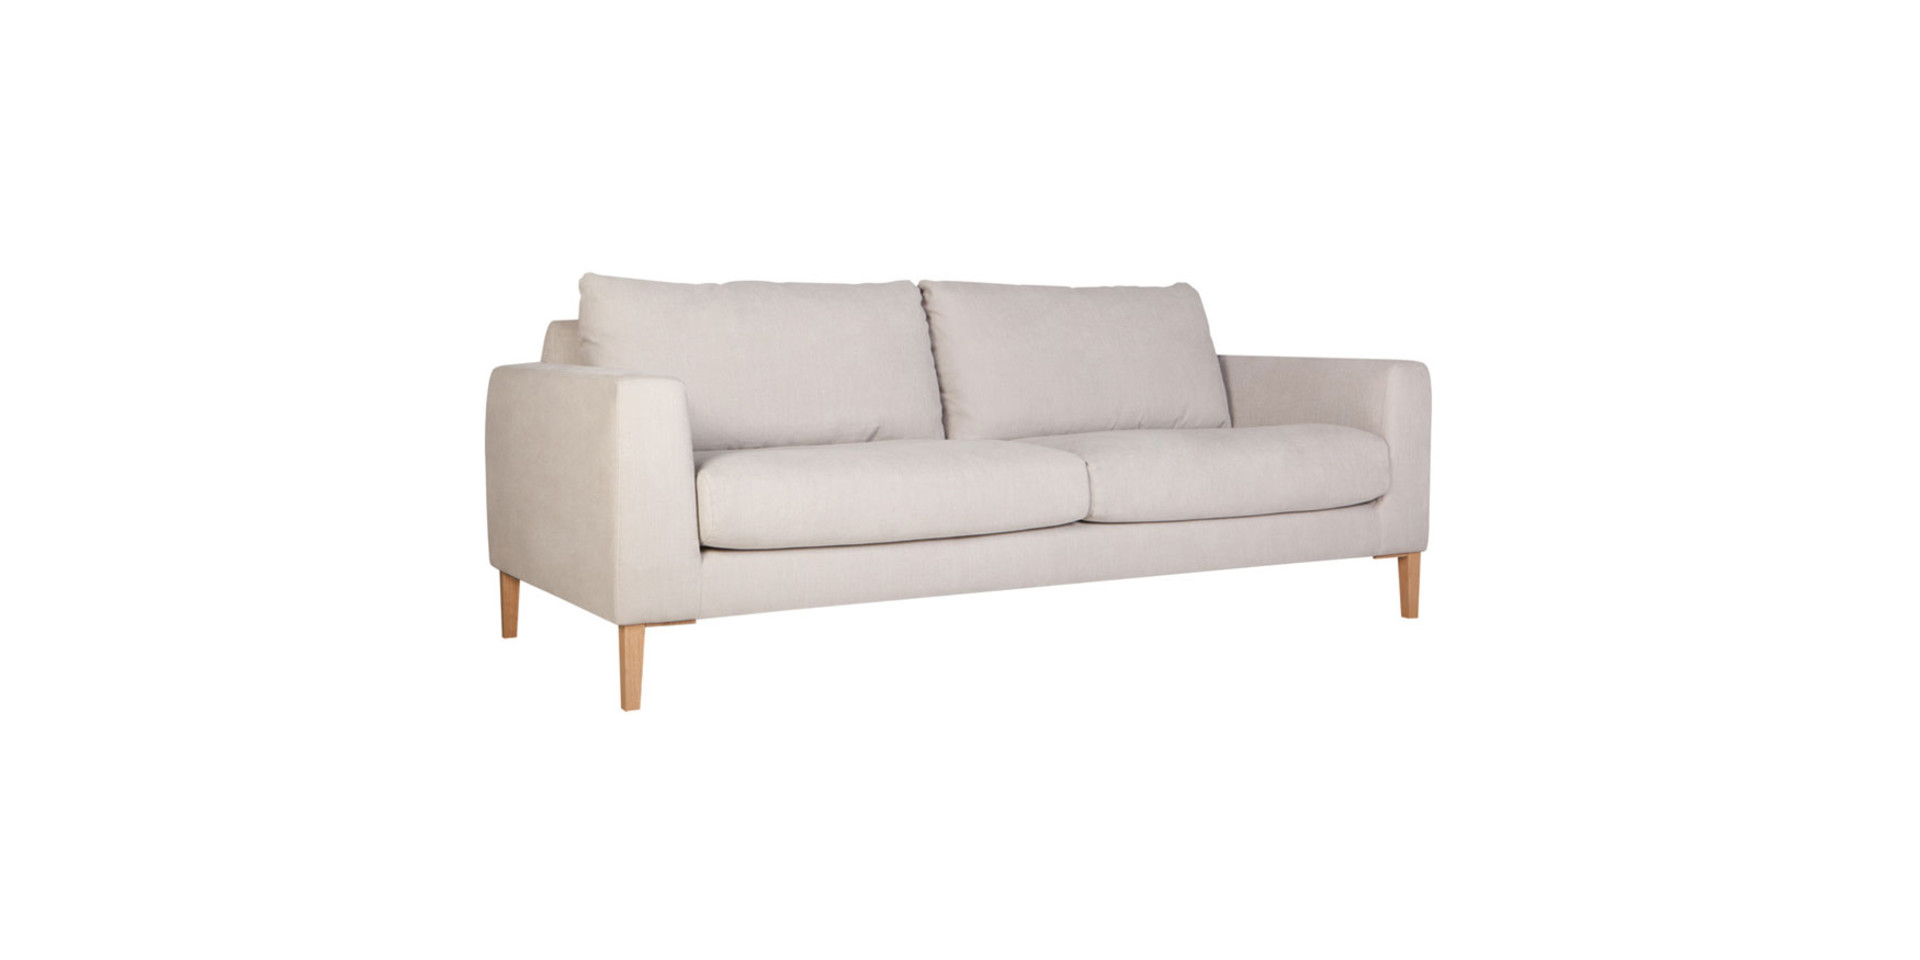 sits-malin-canape-3seater_caleido3790_light_beige_2